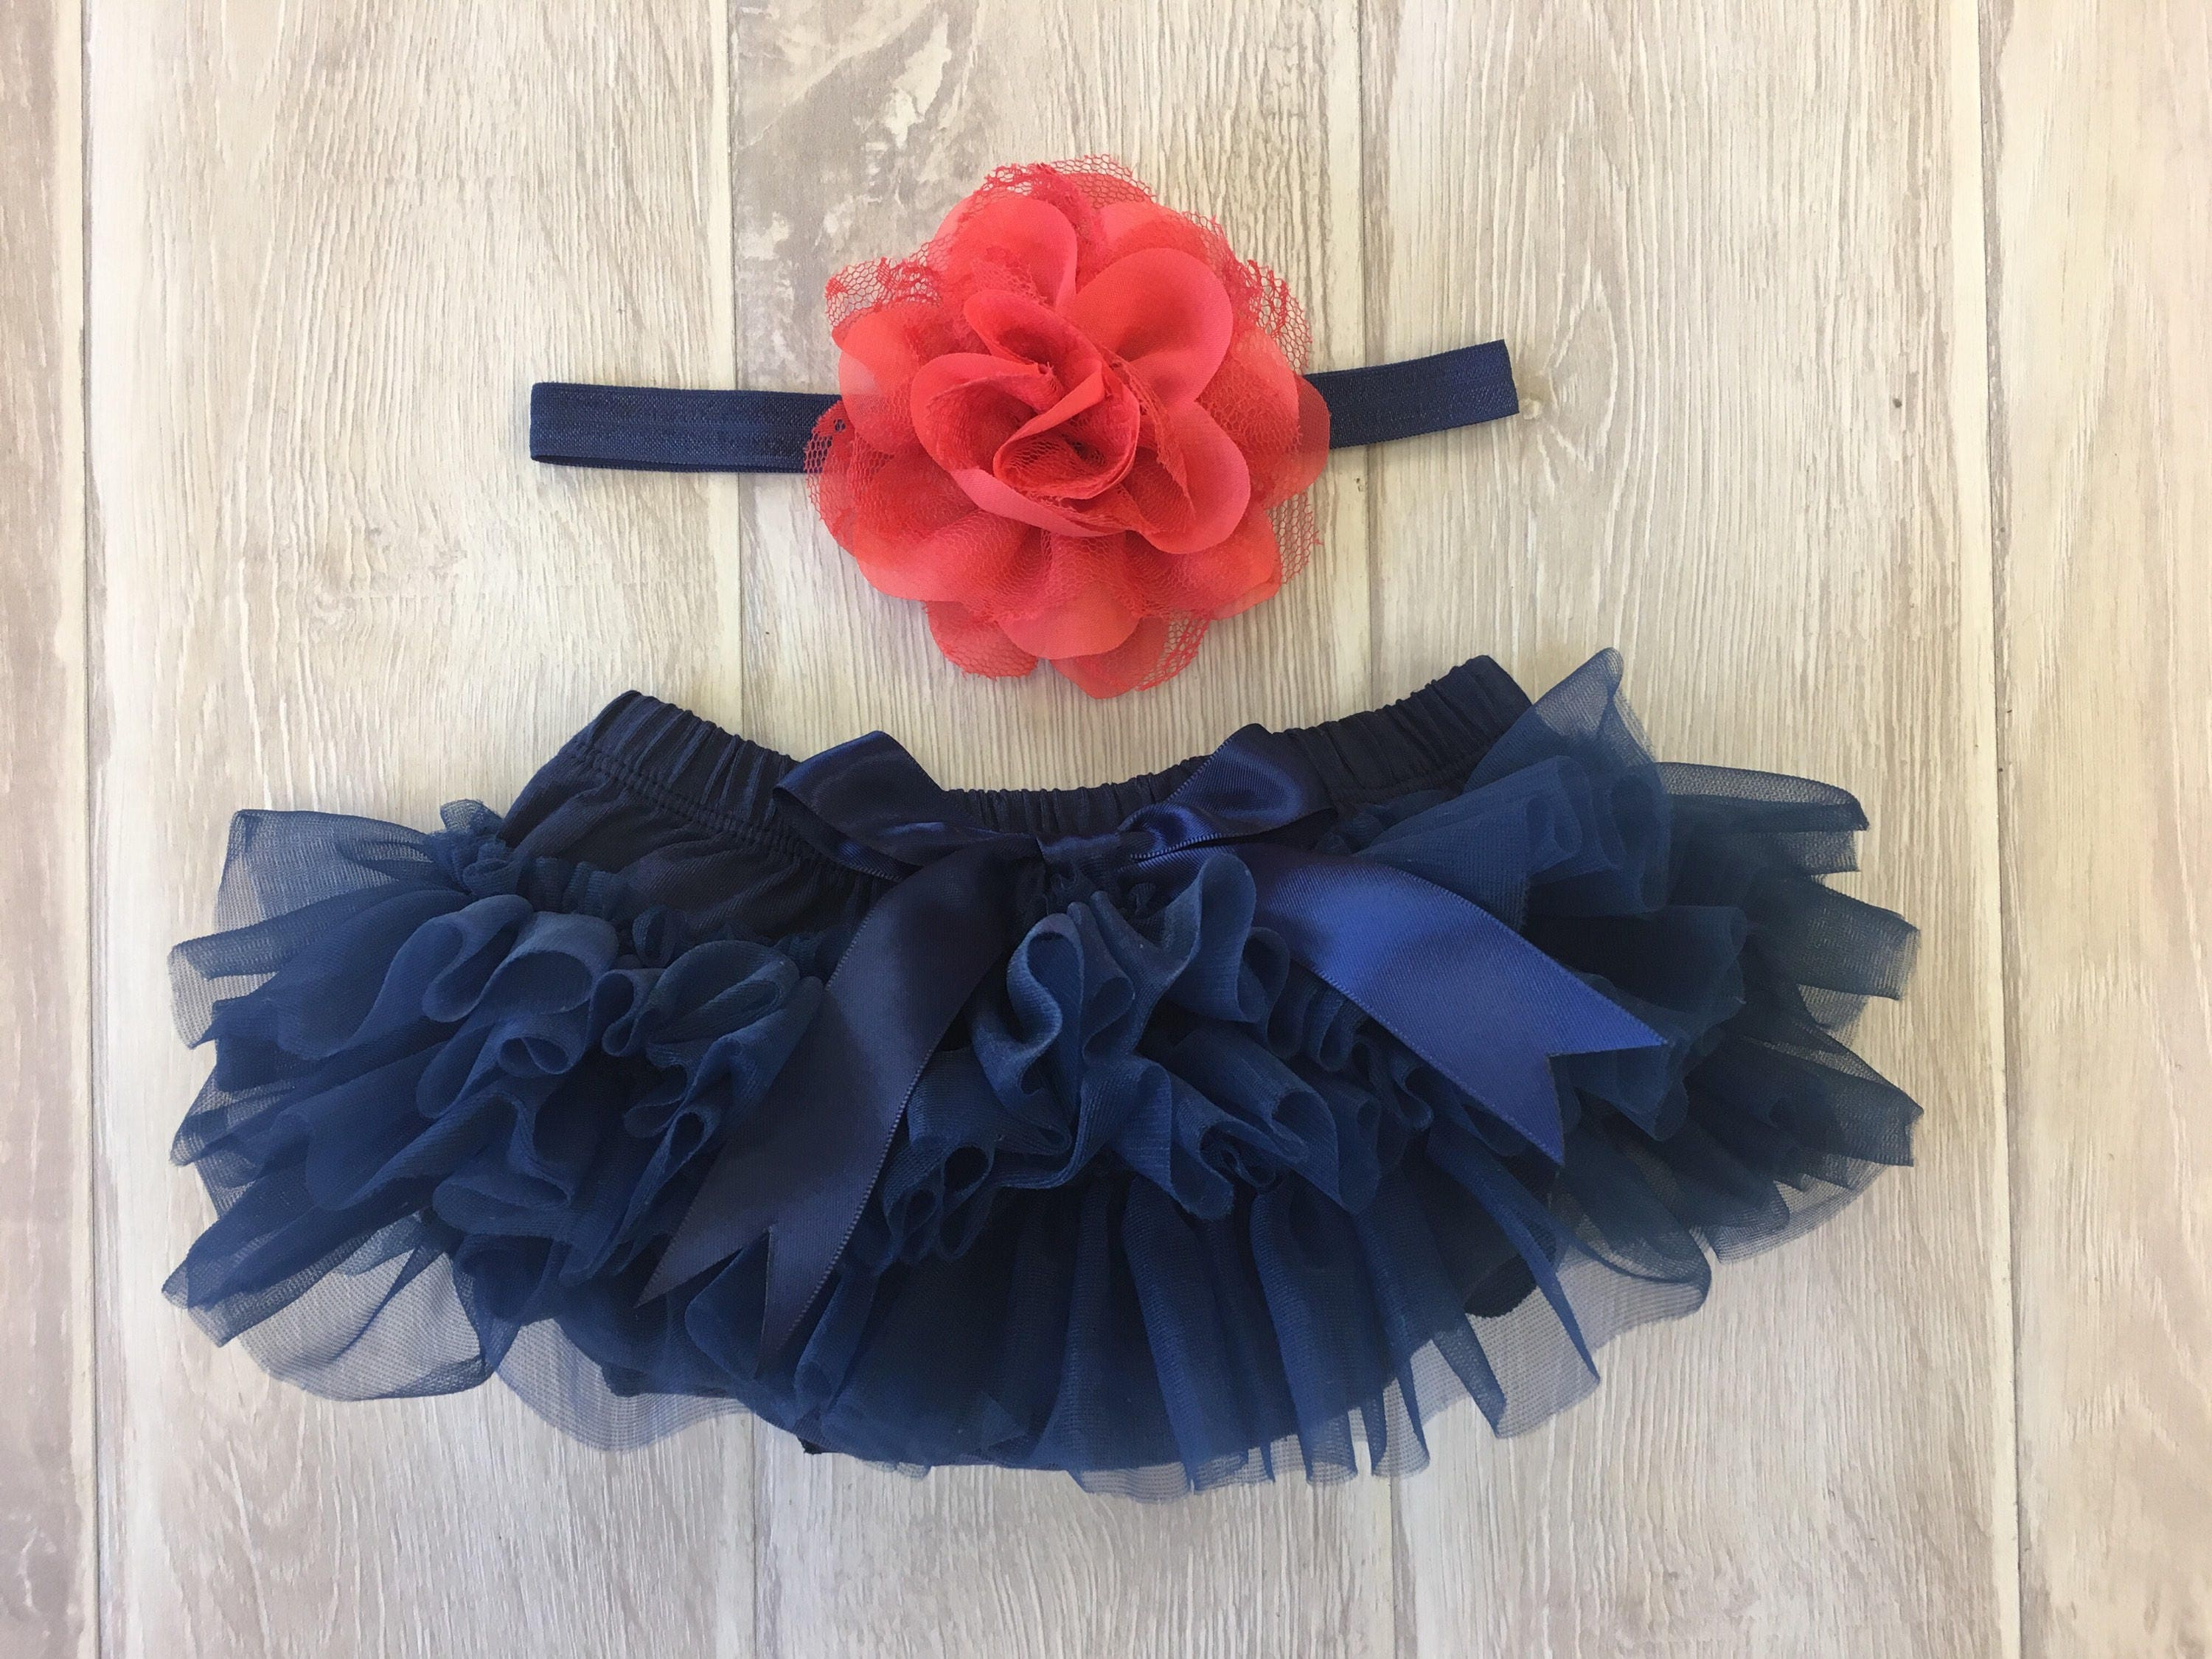 e981b0335 Baby Girl Ruffle Bottom Tutu Bloomer Headband Set in Navy Blue